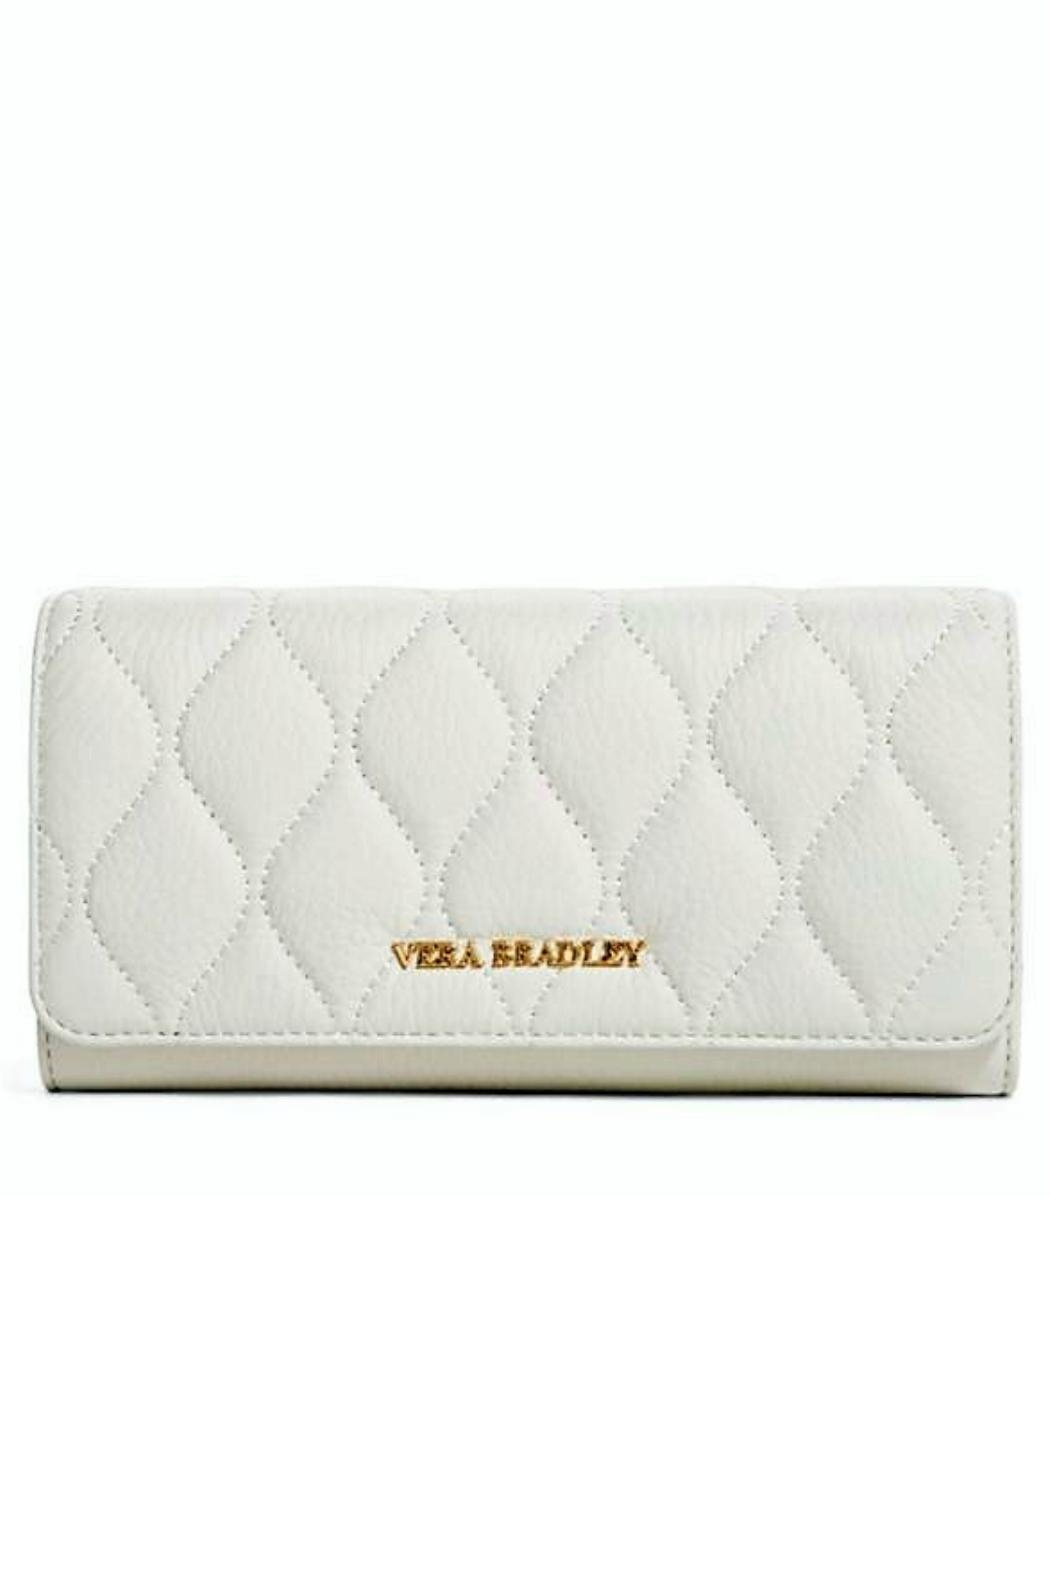 Vera Bradley Quilted Leather Audrey - Main Image